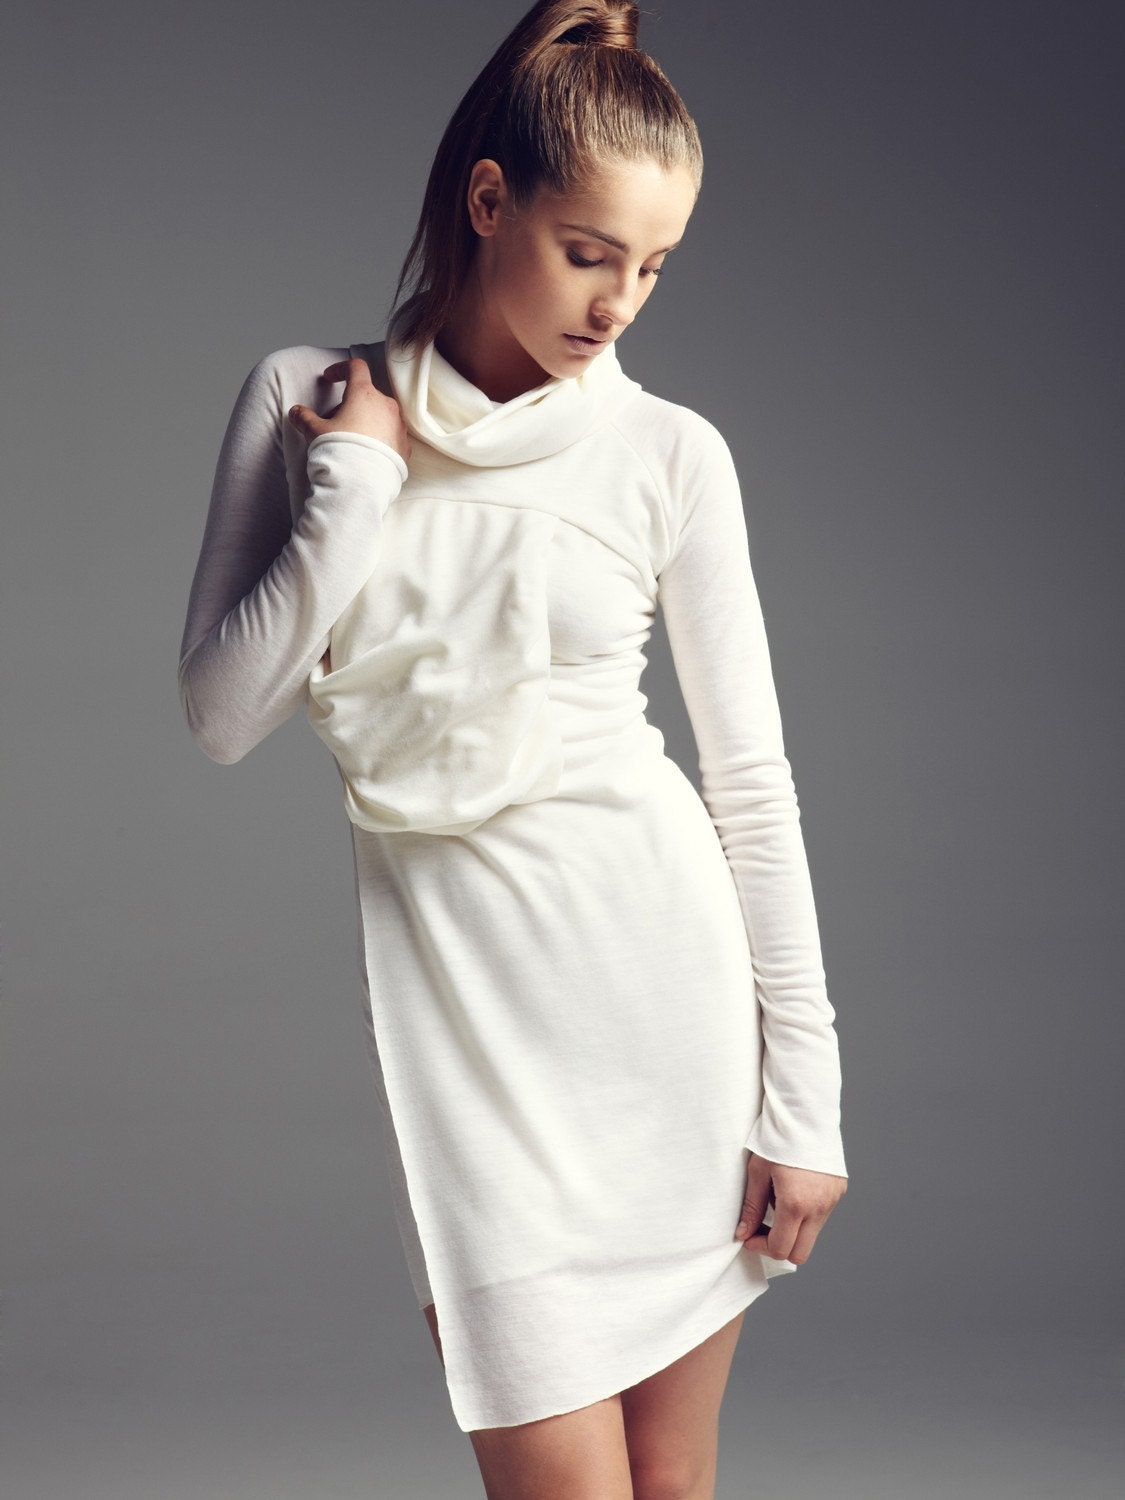 Wool jersey dress - vickyduboisdesign